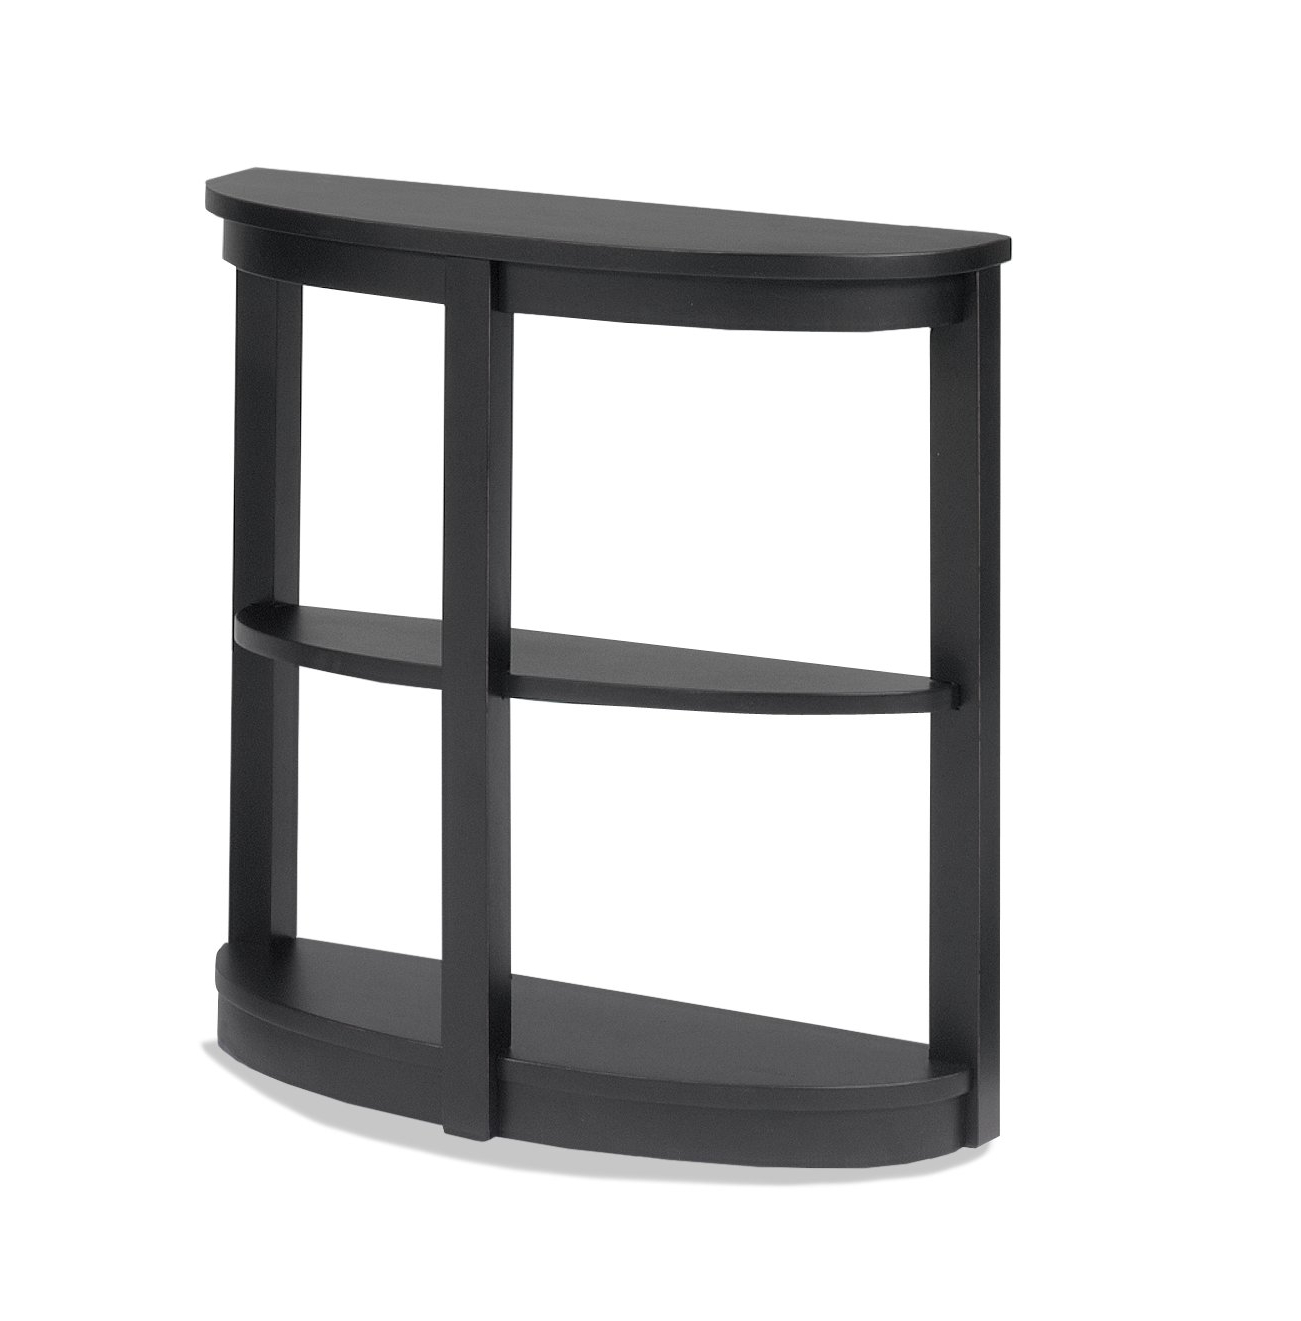 Design Toscano Claremont Manor English Console Table | Wayfair Pertaining To Clairemont Demilune Console Tables (Gallery 12 of 20)